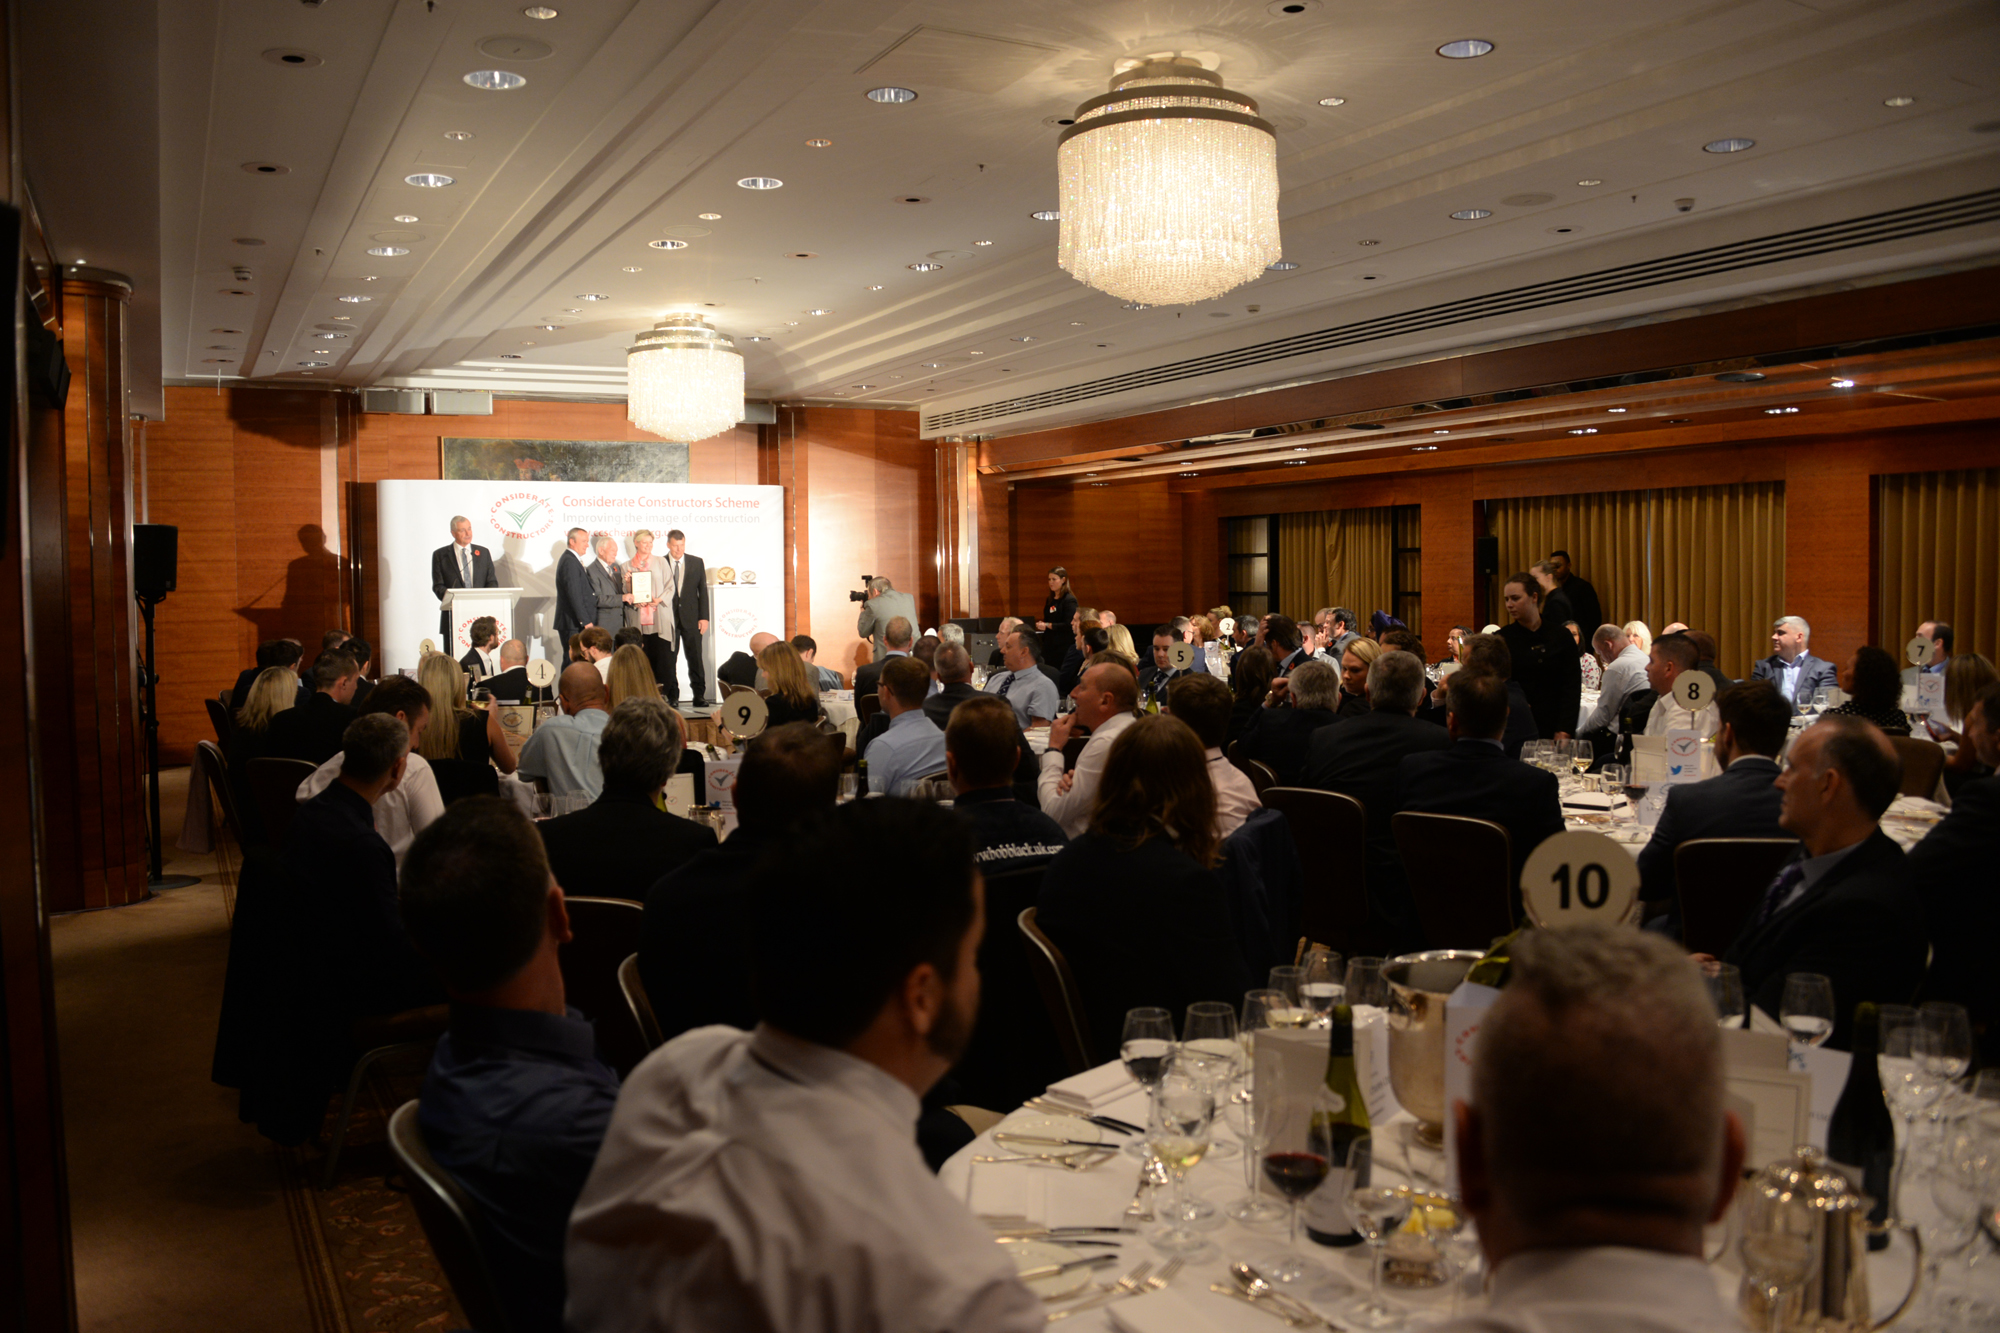 The Considerate Constructors Scheme set to host National Awards